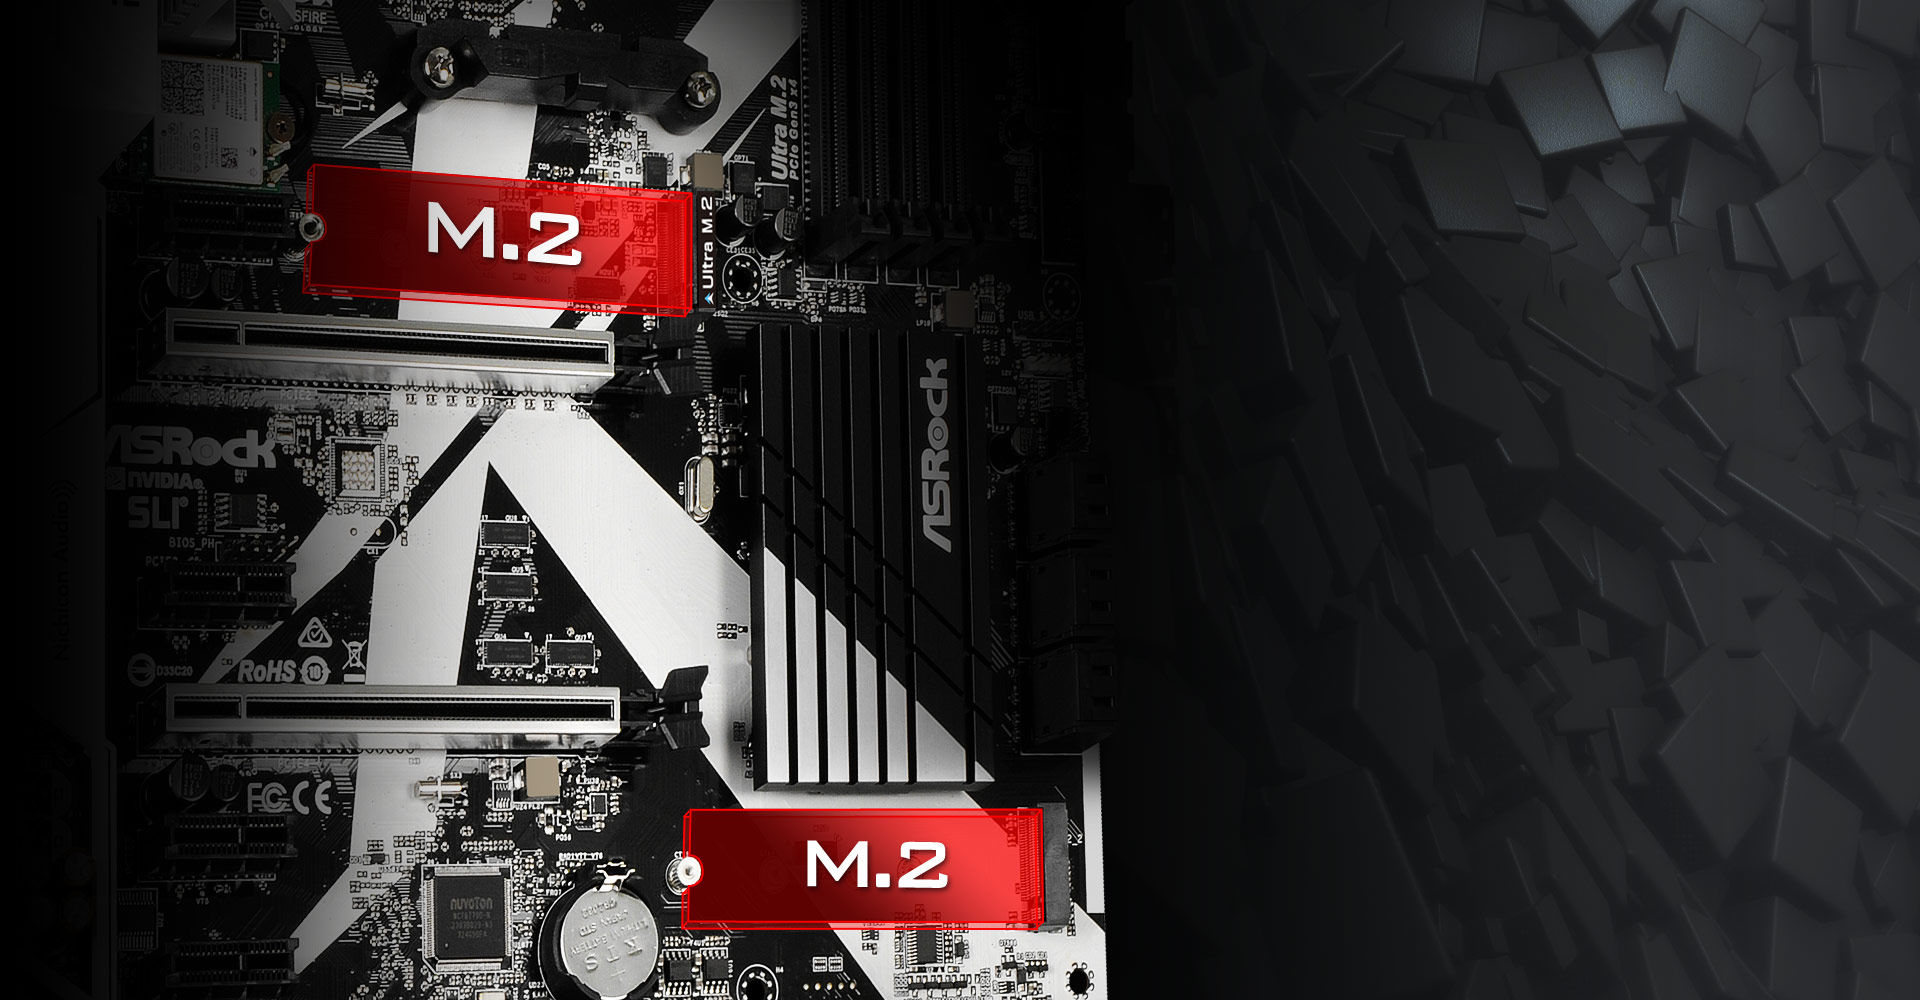 Asrock X370 Killer Sli 32153 Pcie Wi Fi Chip The Other One Supports Gen2 X2 10gb S Transfer Speed Both Of Them Support Sata3 6gb M2 Modules